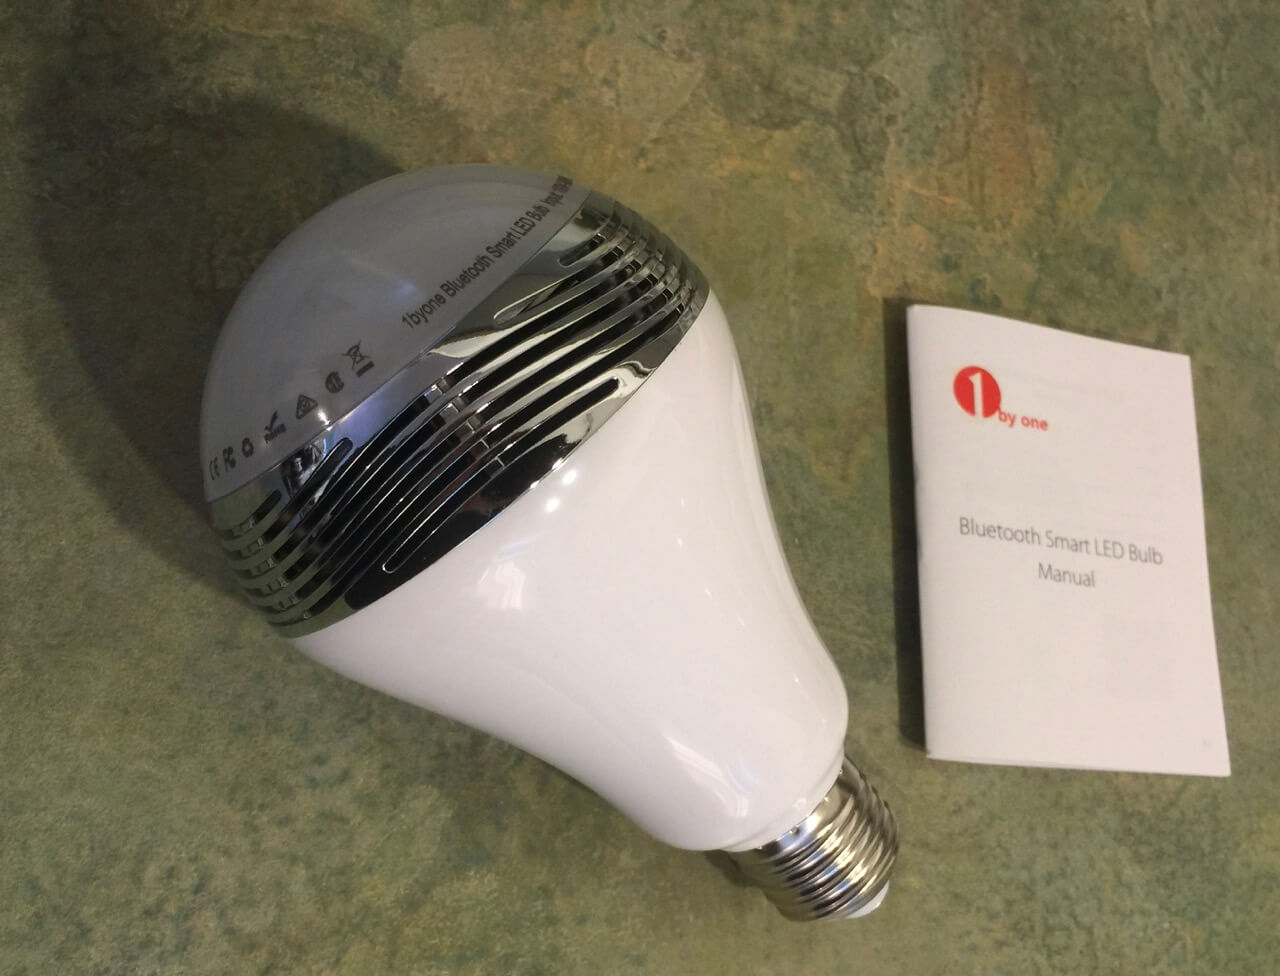 Product review 1byone smart led bluetooth light bulb with for Bluetooth bulb